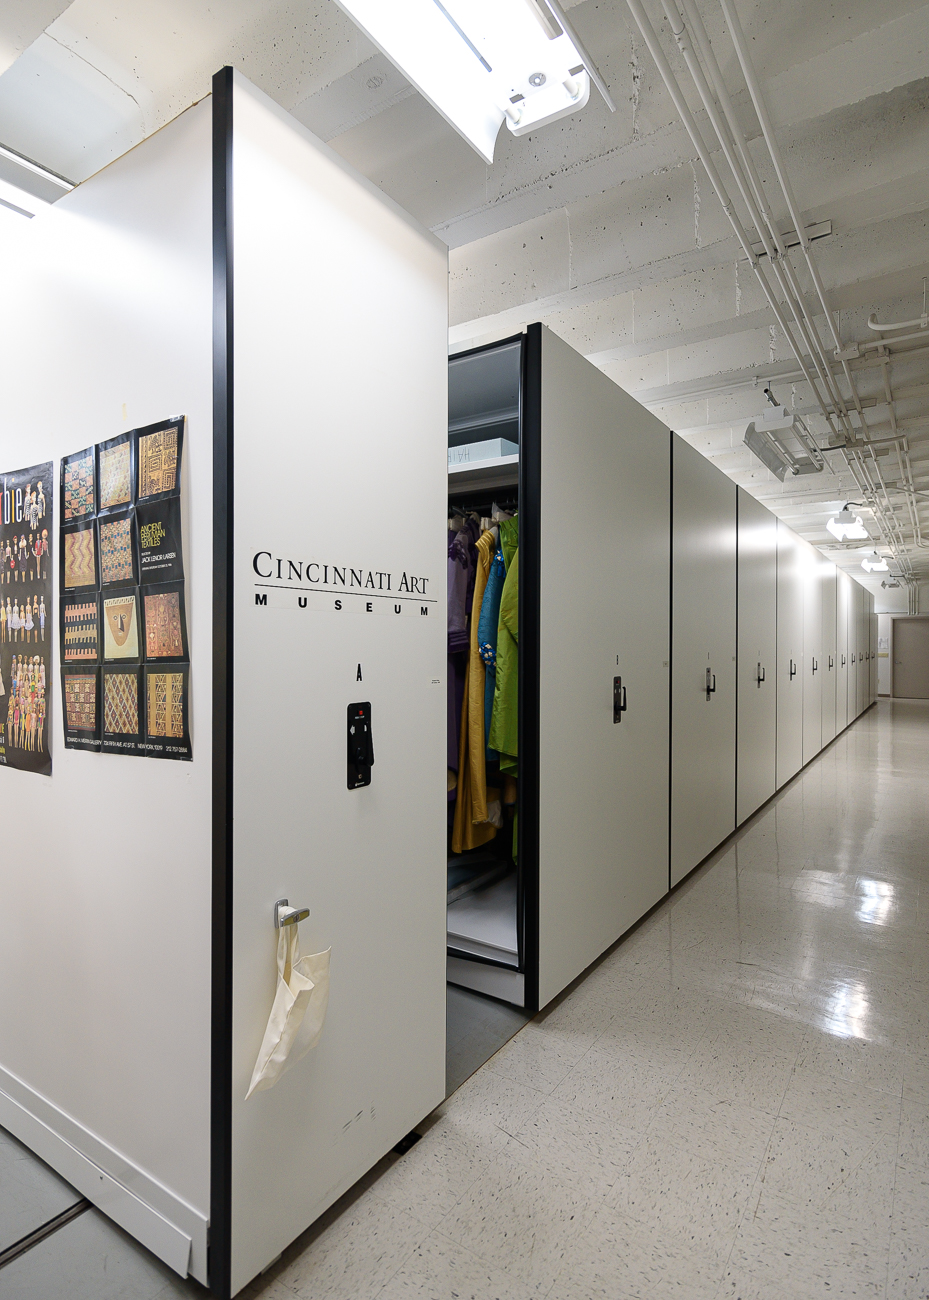 Deep within the lower levels of the Cincinnati Art Museum sits the Fashion Archive—an area where the museum's collection of around 15,000 garments and textiles ranging from the 5th century to today is safely stored. Temperature and humidity controlled and without windows, the facility is filled with movable shelves to pack as much storage into the space as necessary. The shelves move automatically when a control panel is pressed at the end of each row. It's not open to the public, though members of the Cincinnati Art Museum are occasionally invited down to see it on a guided tour. / Image: Phil Armstrong, Cincinnati Refined // Published: 2.18.20